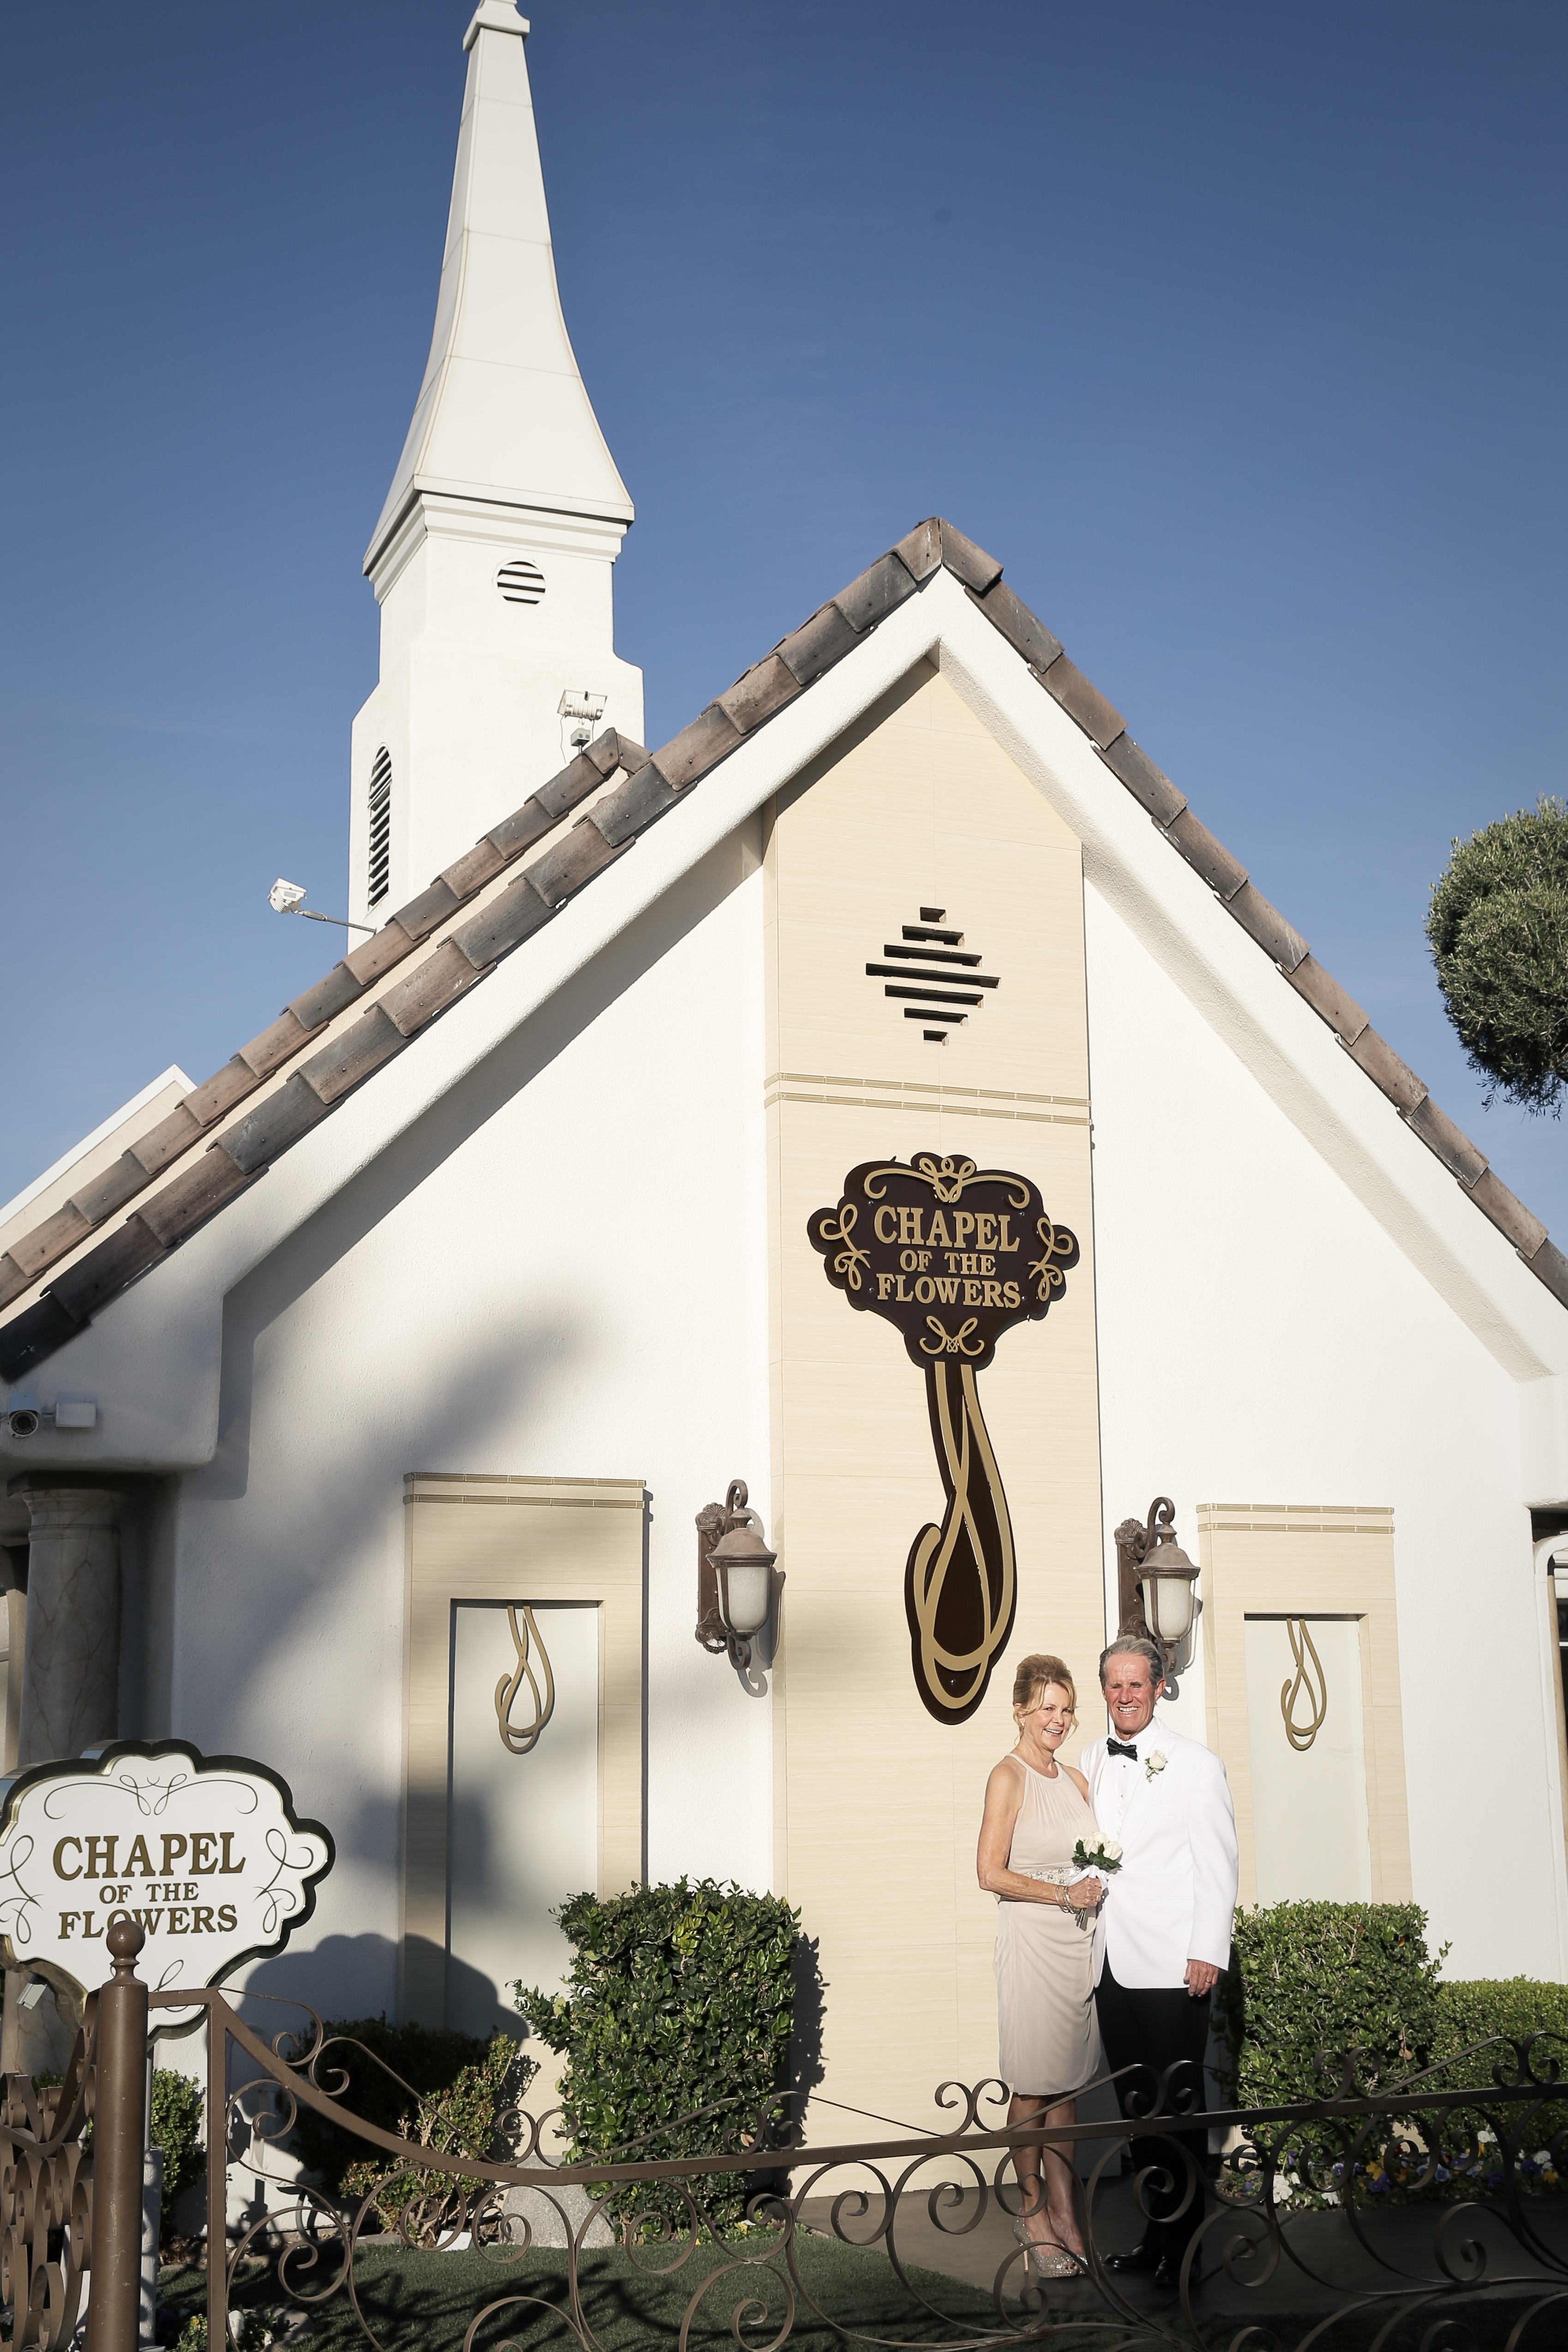 Historic Chapel of the Flowers in Las Vegas Celebrates Romance During Entire